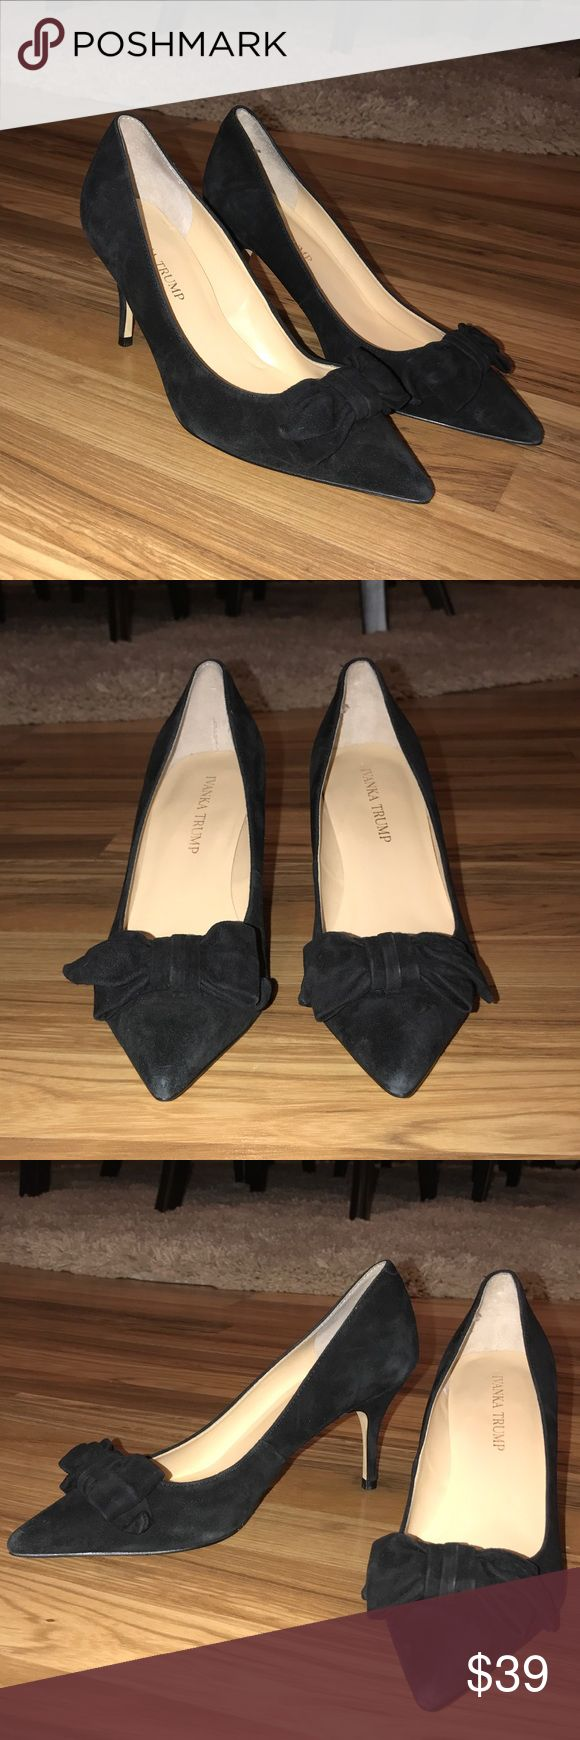 Ivanka Trump Black Suede Bow Heels Ivanka Trump. Suede. Black. Now detailing on toe. In excellent condition!! Perfect for the office 🖤 Ivanka Trump Shoes Heels